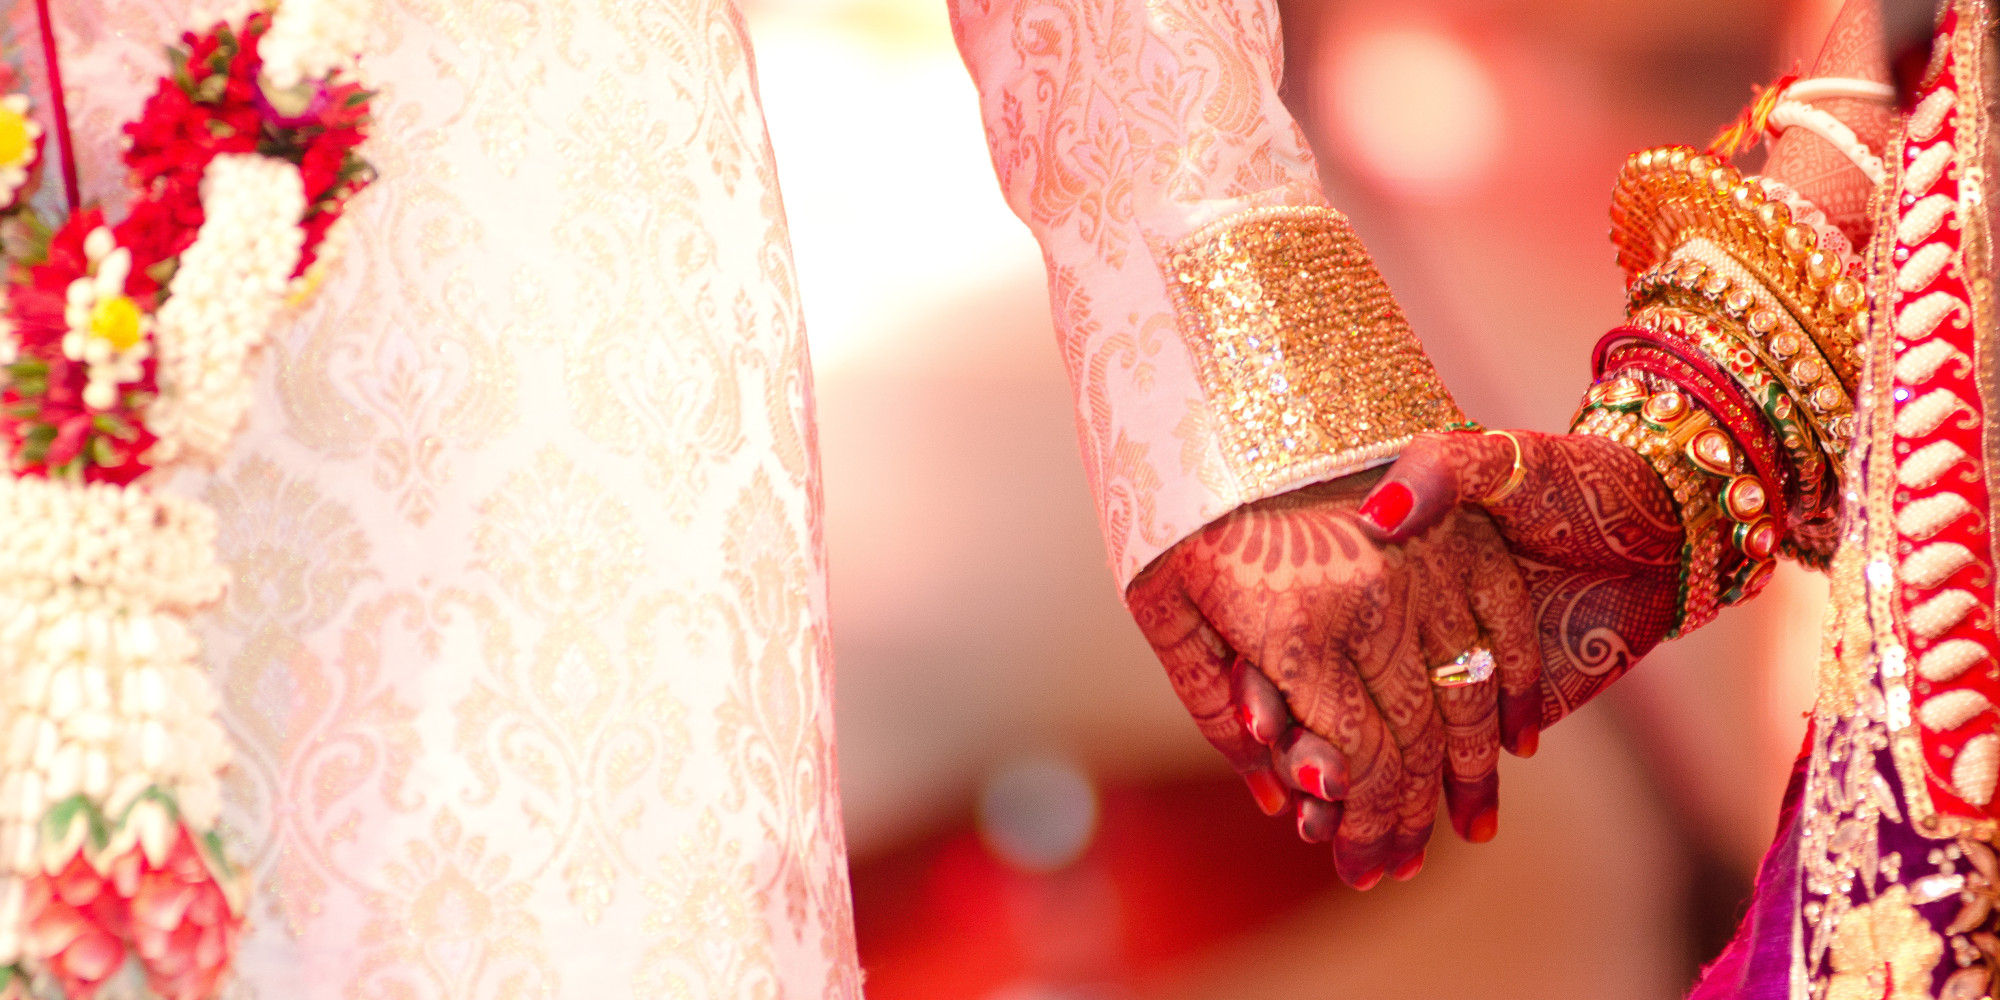 Few reasons that prove arranged marriages in India have their particular benefits